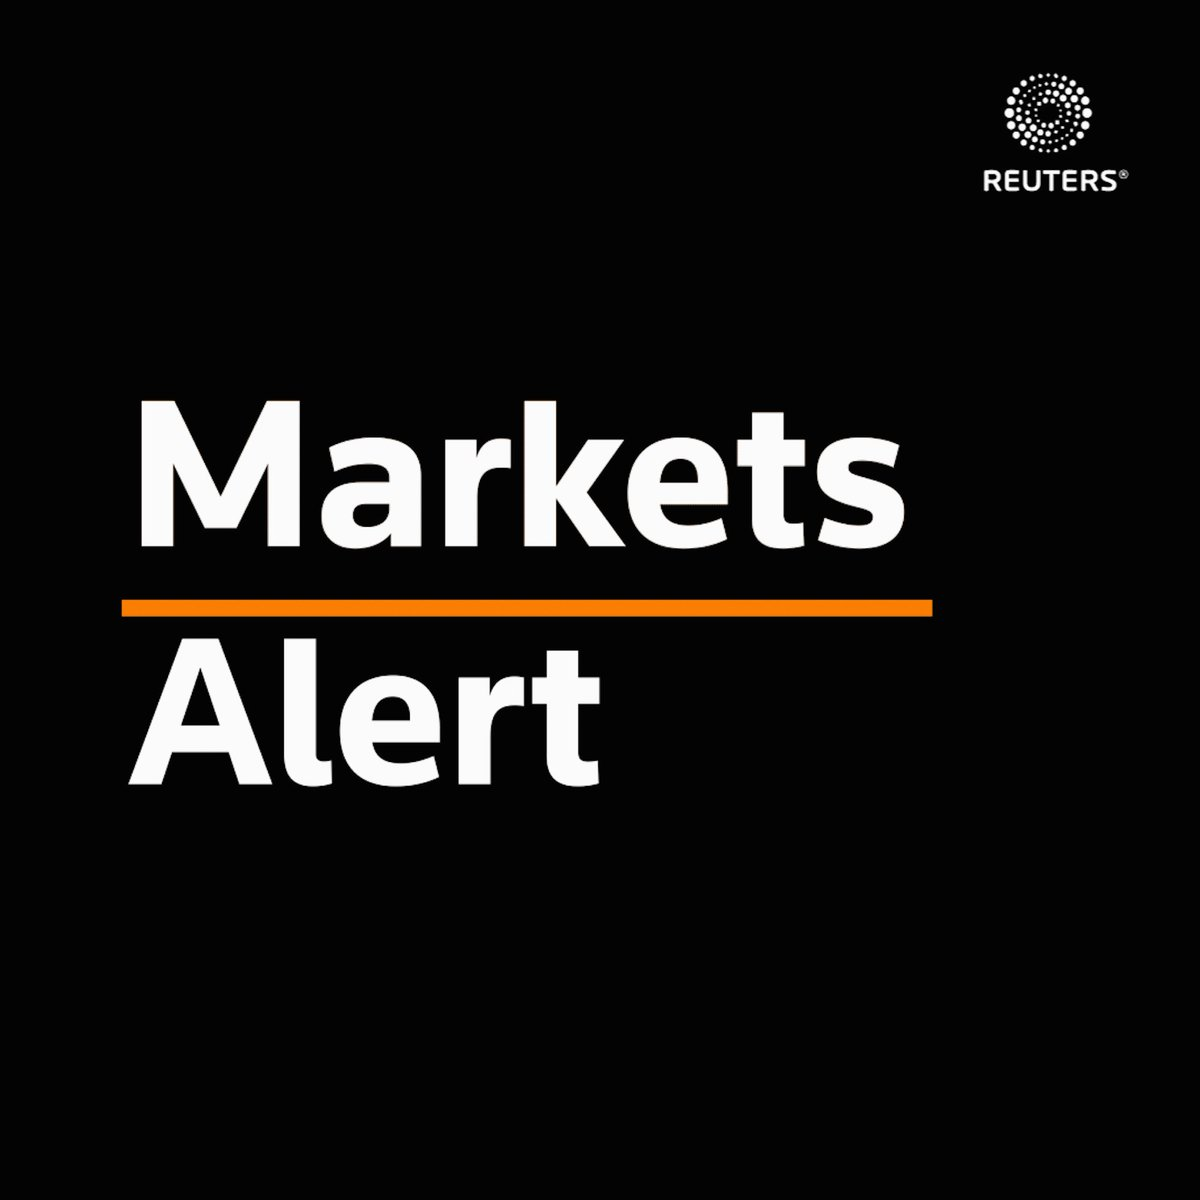 Wall Street tumbles on concerns about new lockdowns in Europe and possible delays in fresh stimulus from Congress https://t.co/30gYsfpEMo https://t.co/y88FvFwjjS